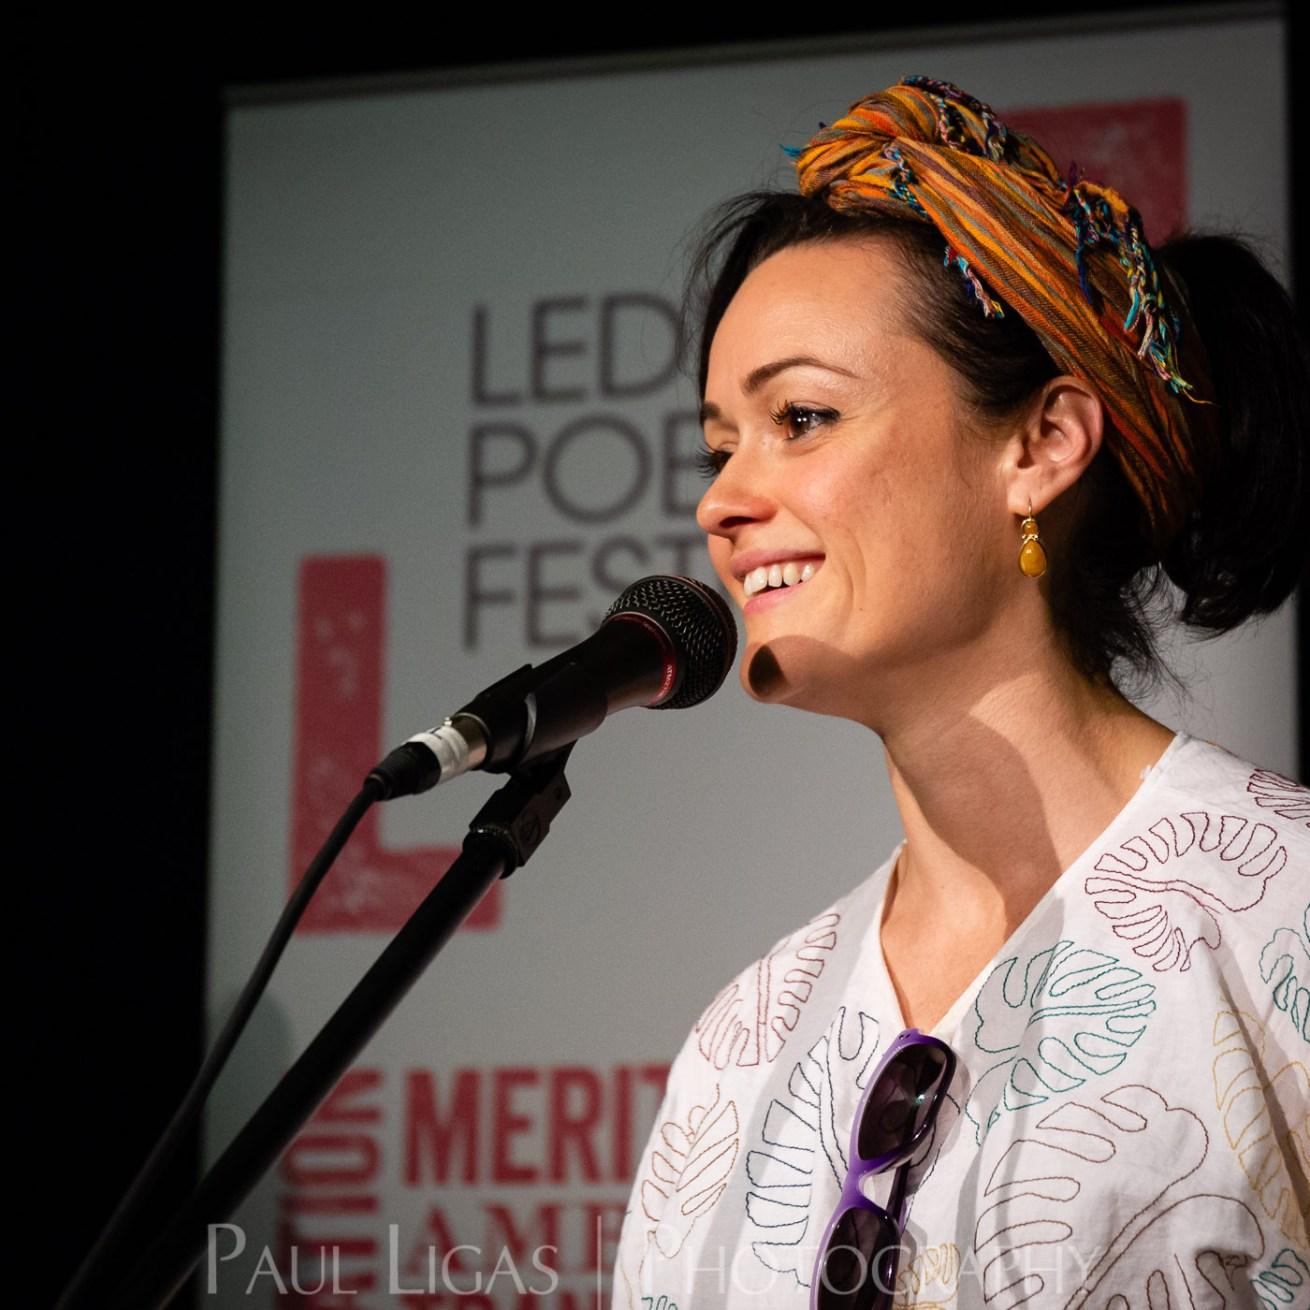 Ledbury Poetry Festival 2018 event photographer herefordshire Sabrina Mahfouz 9549